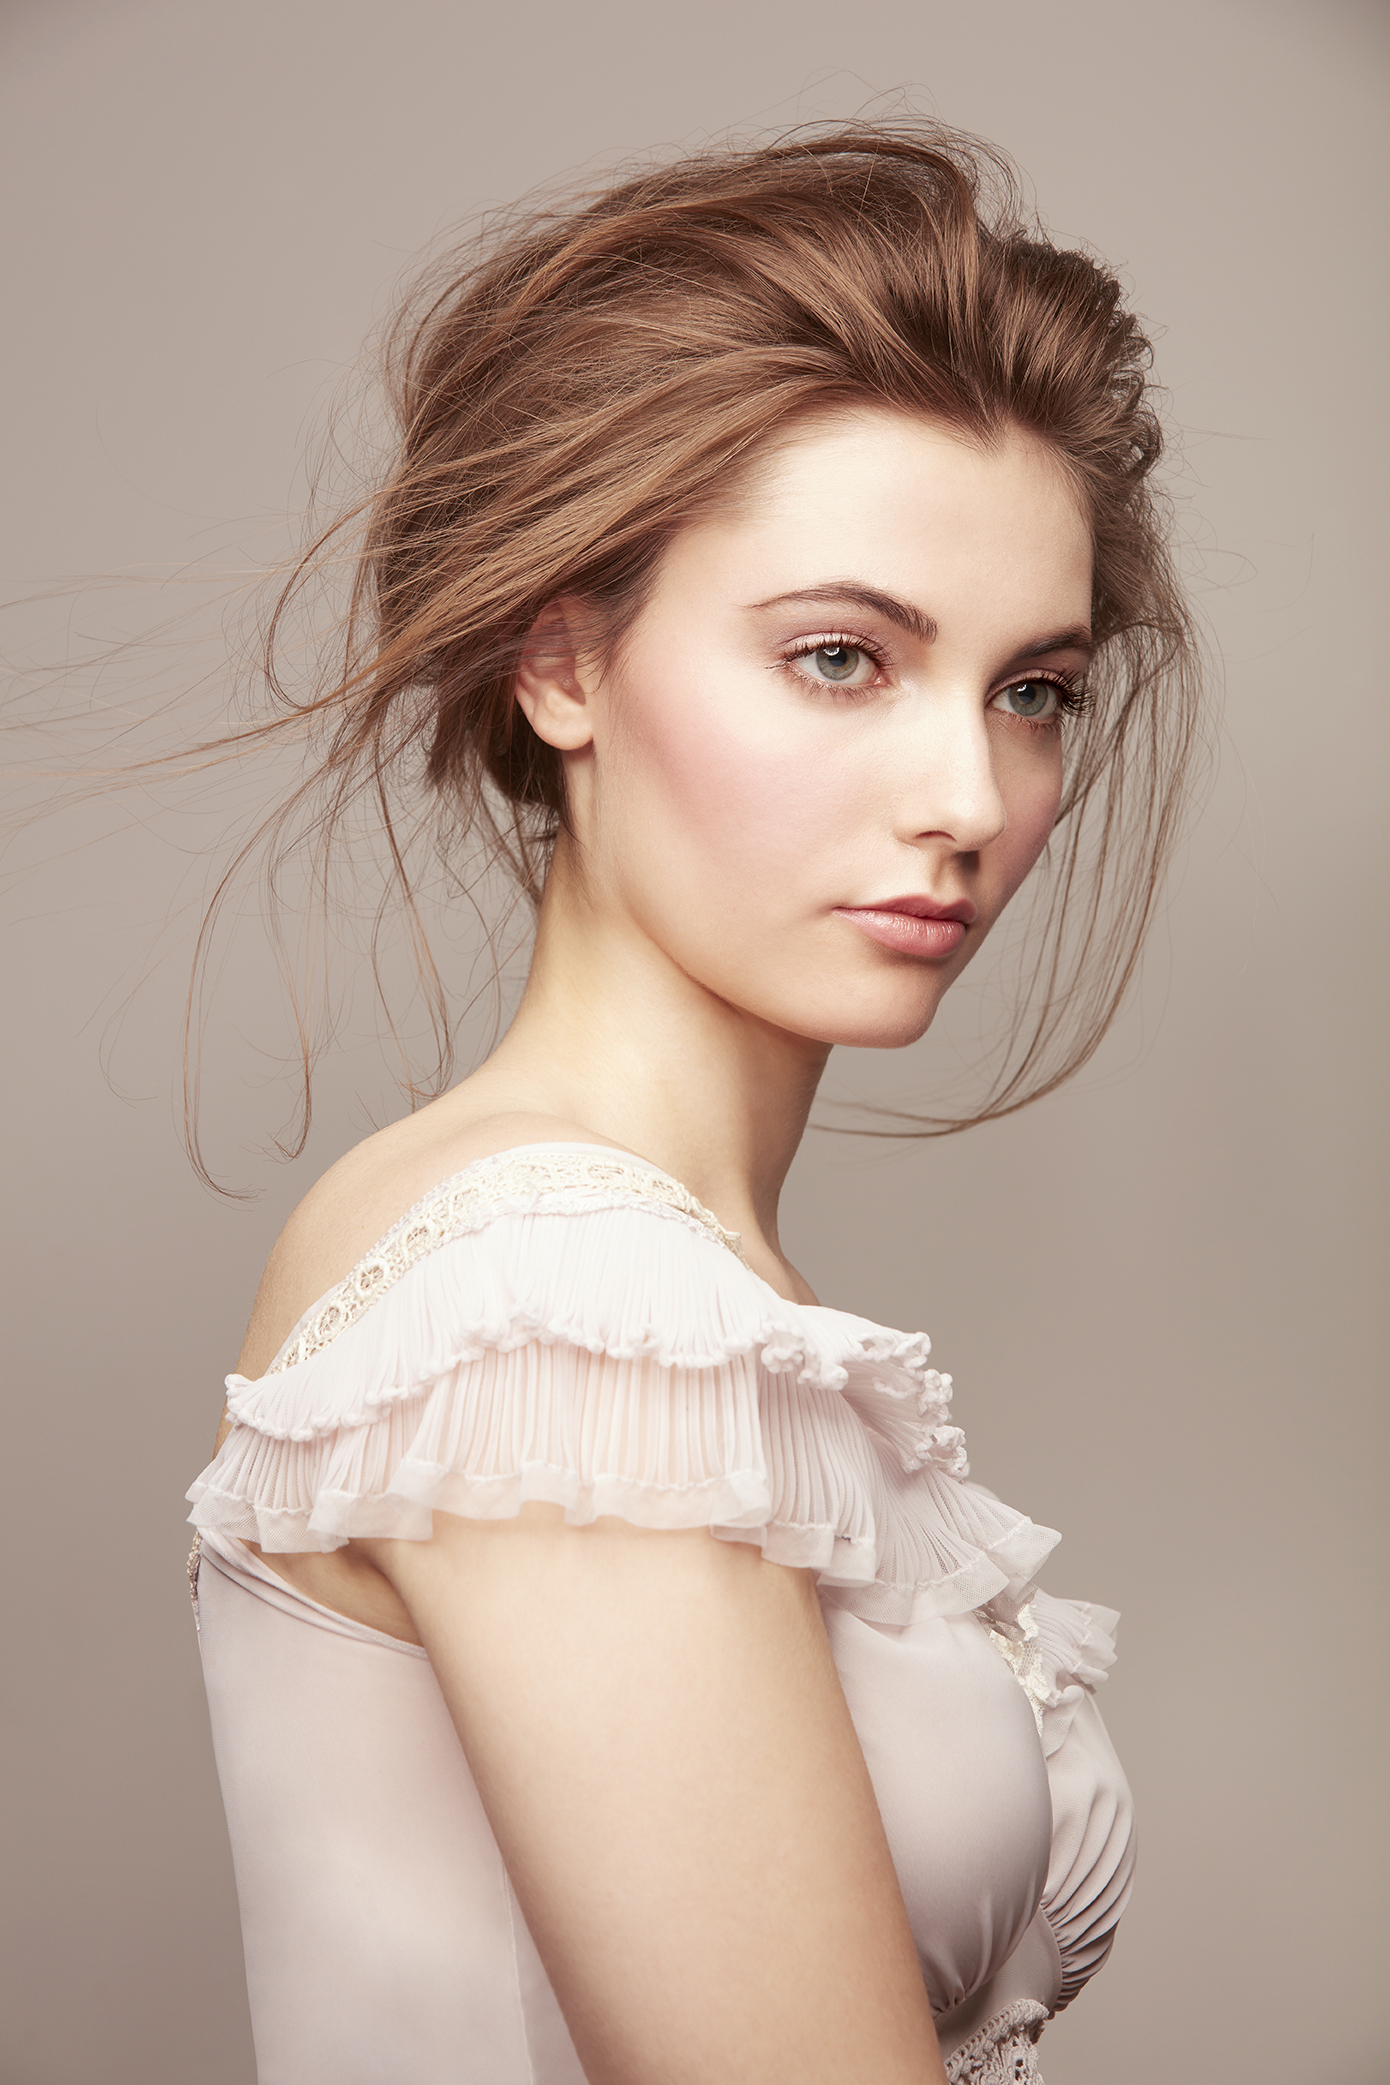 retouched woman in lacy dress with loose, romantic up-do